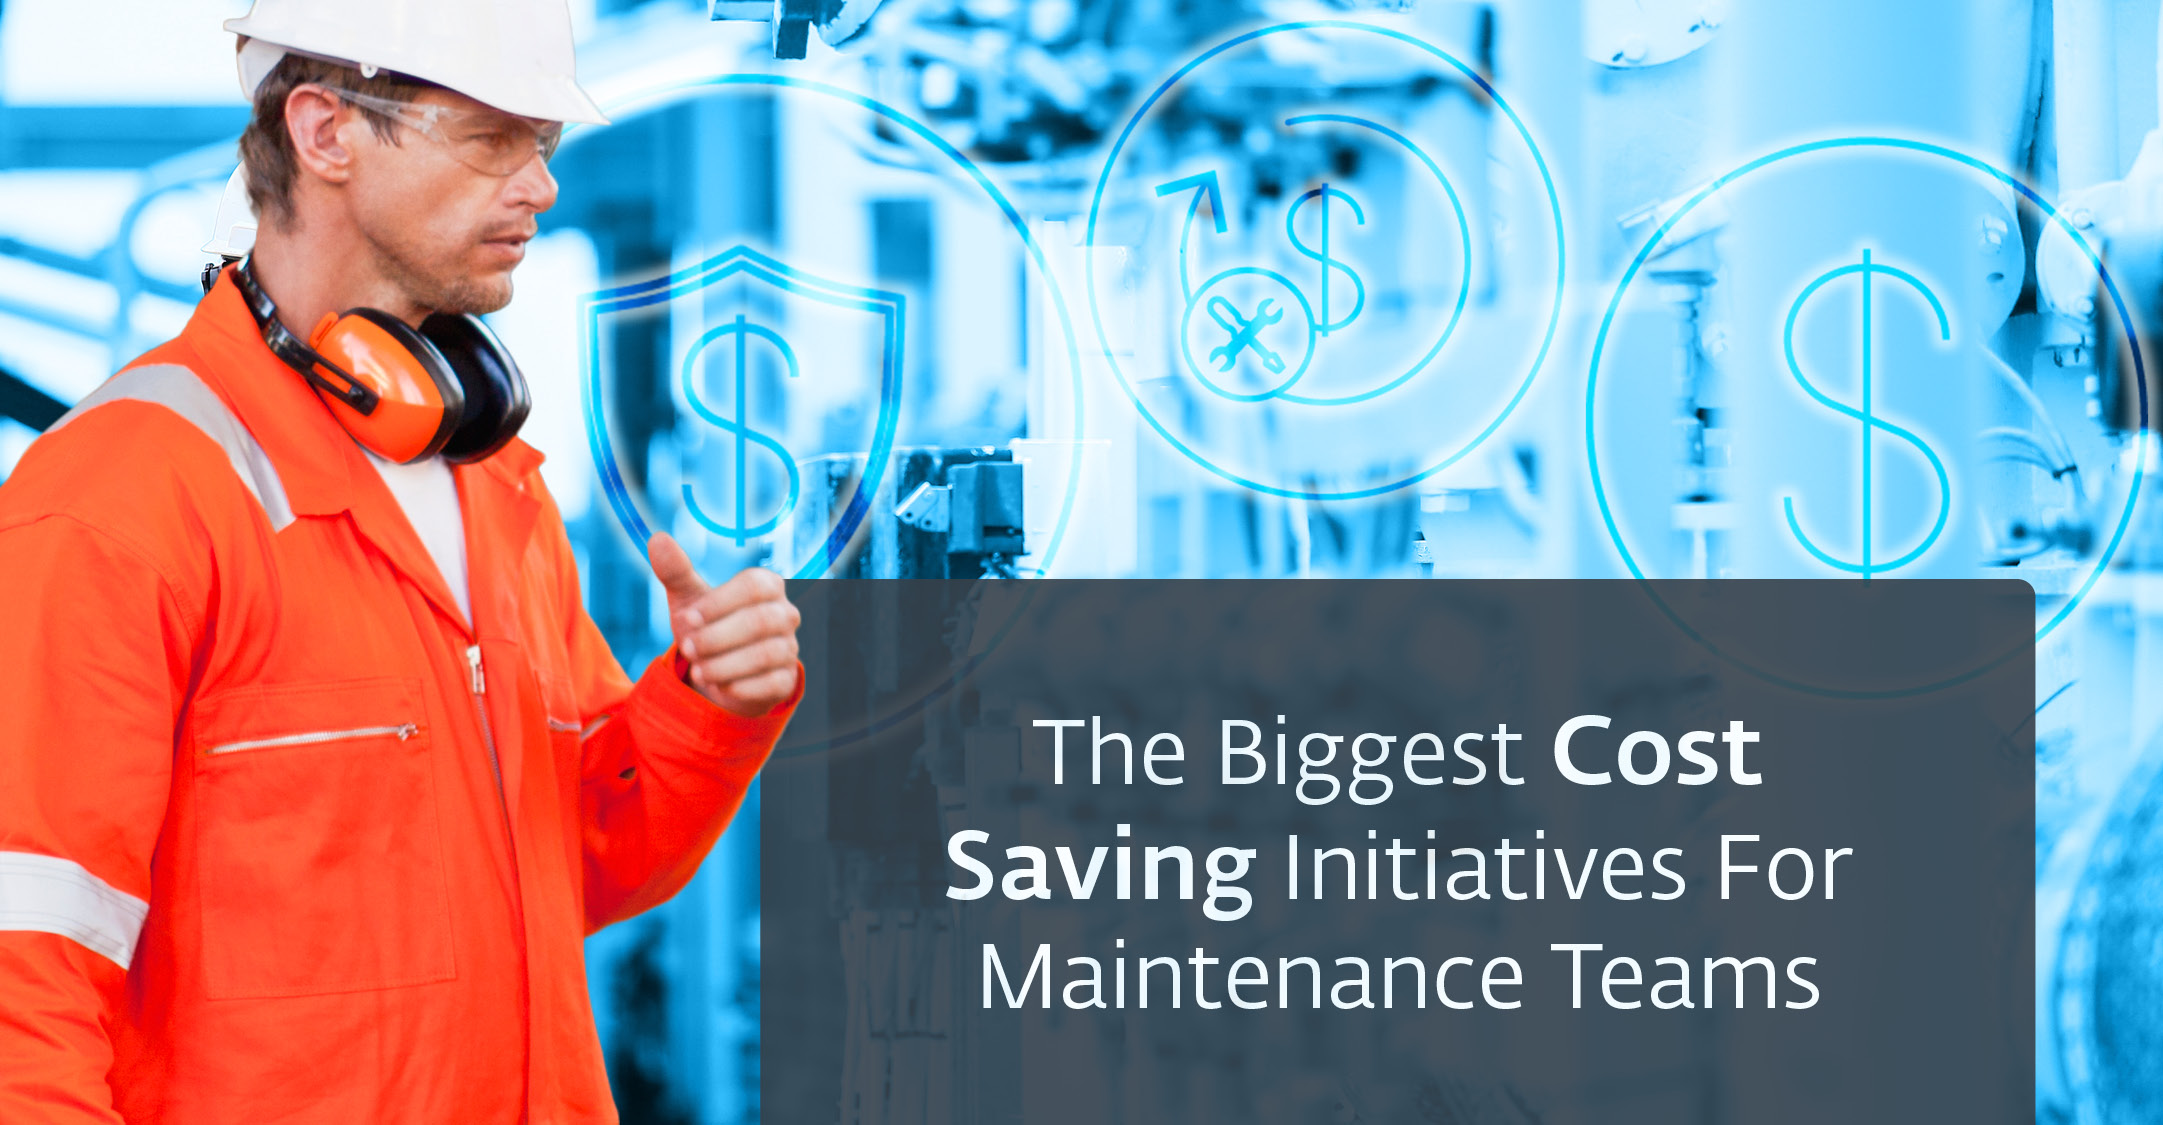 The biggest cost saving initiatives for maintenance teams